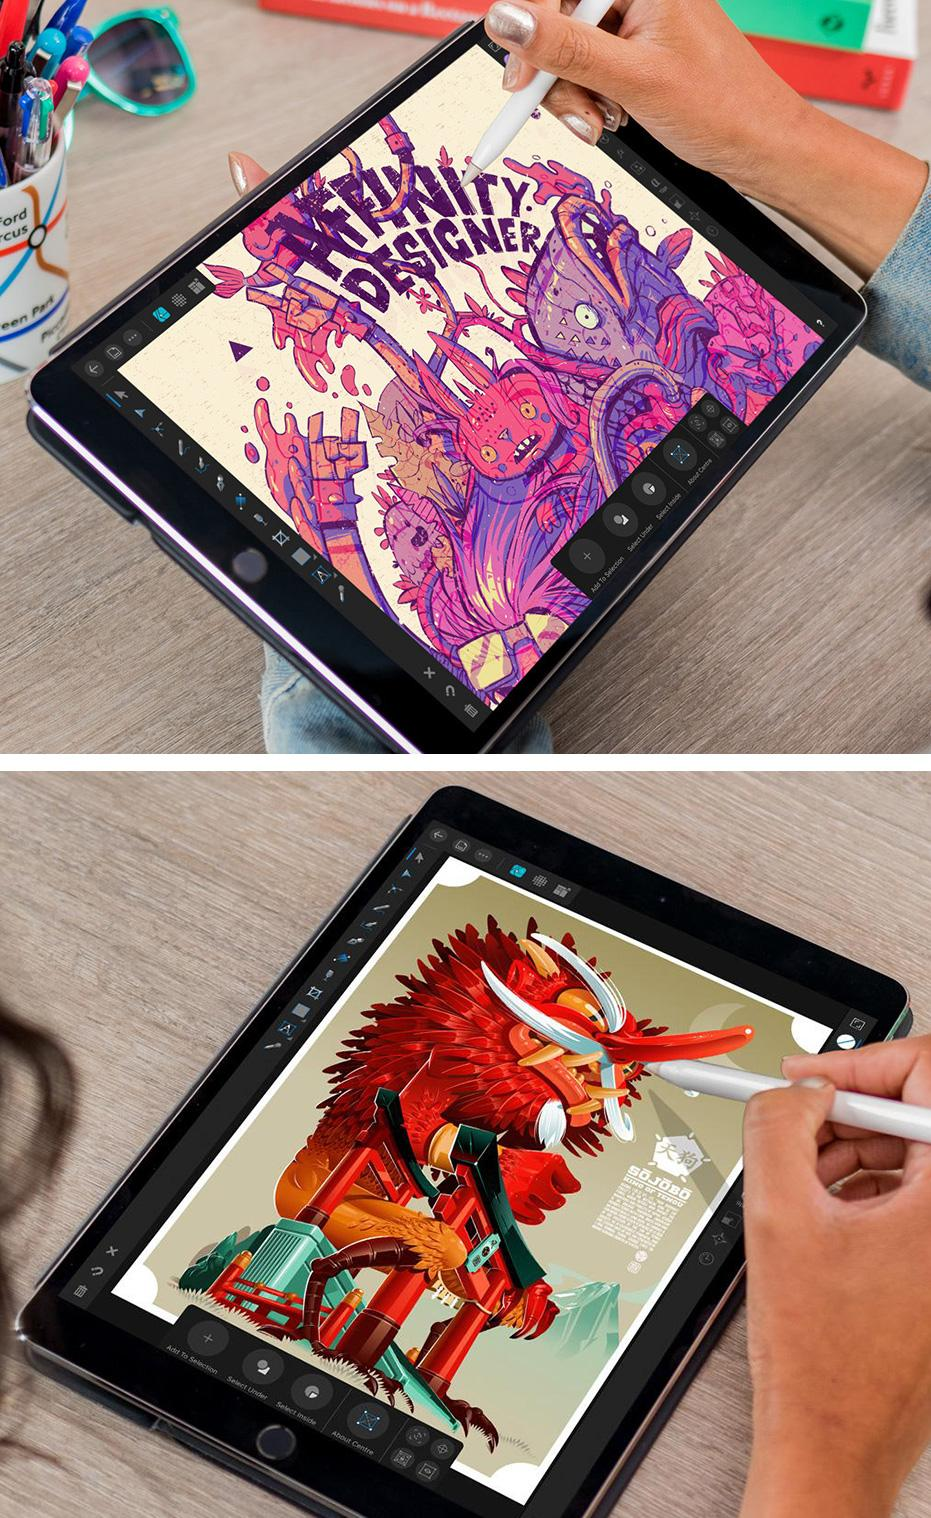 The 14 best apps for drawing and painting on your iPad